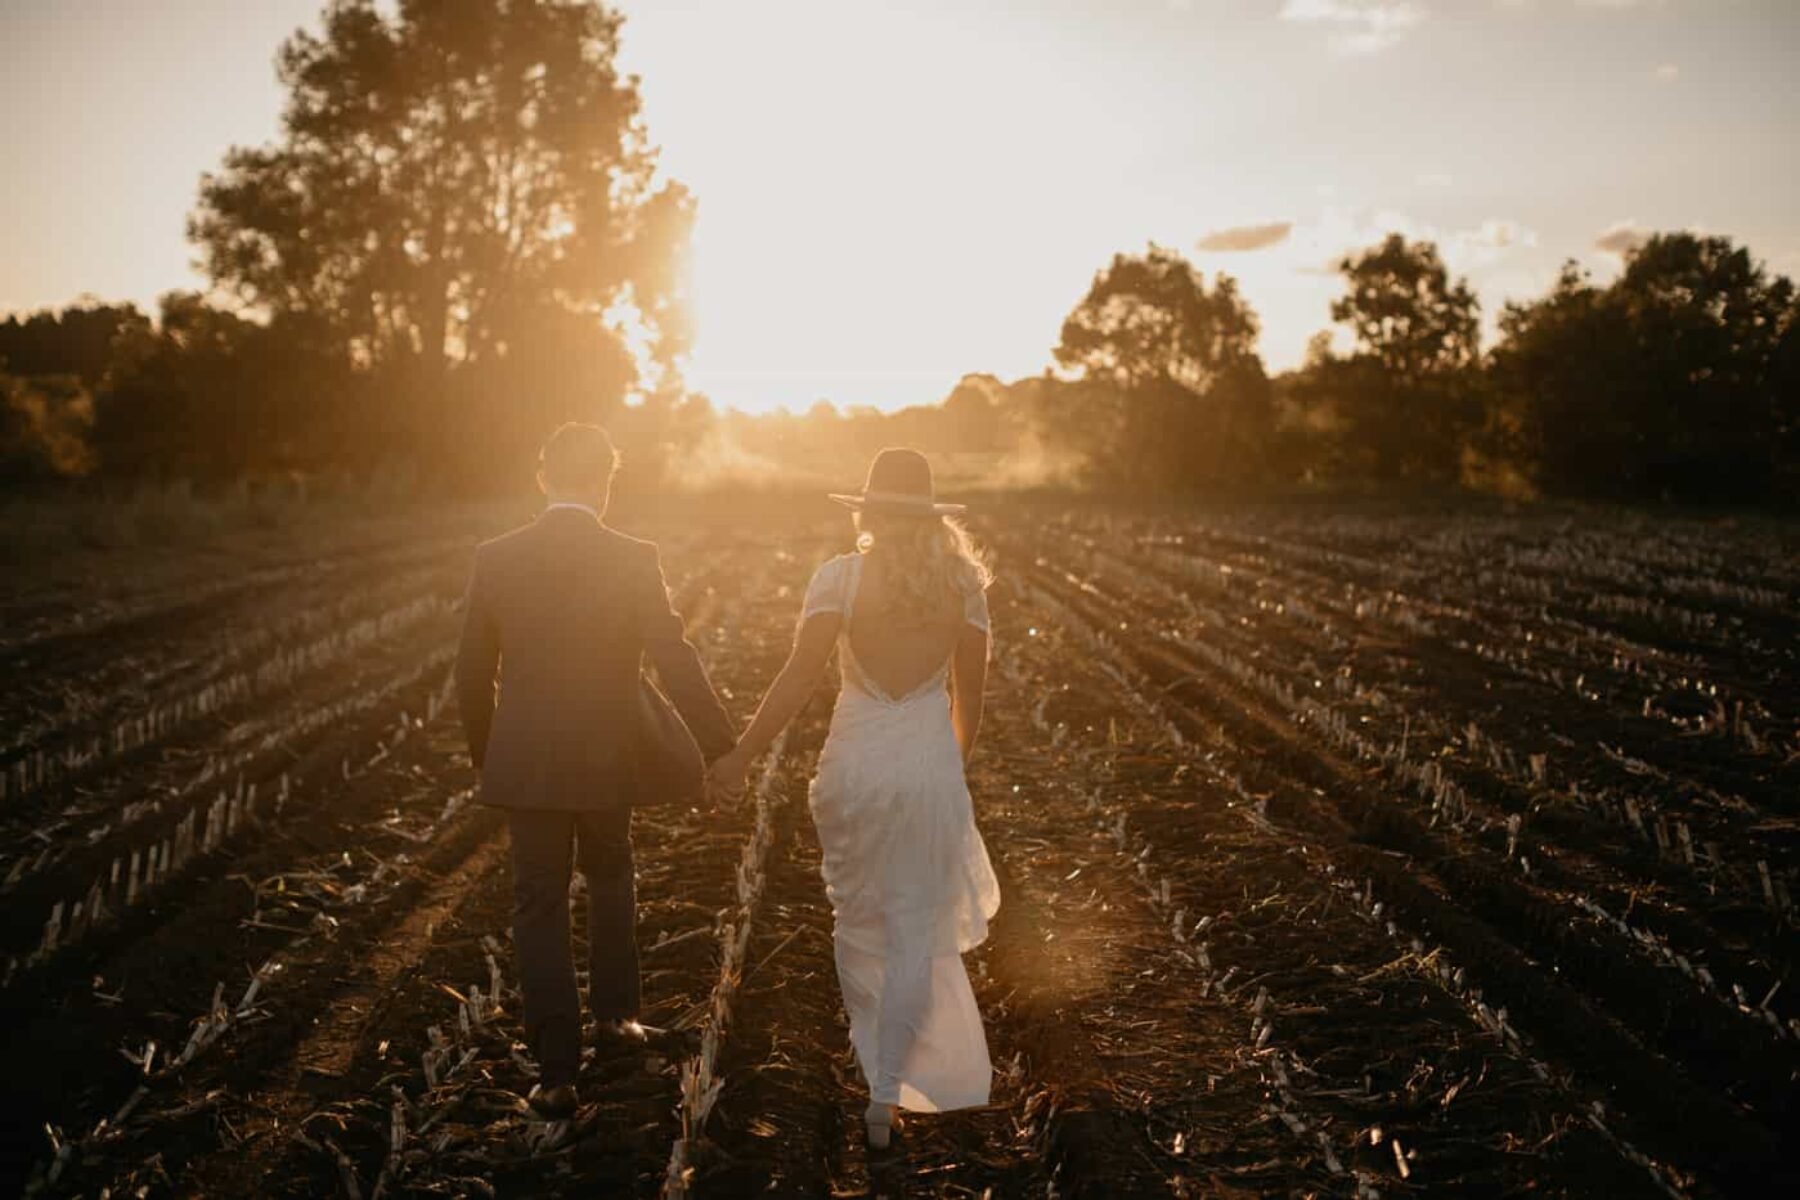 sunset wedding portraits by Mitch Pohl photography